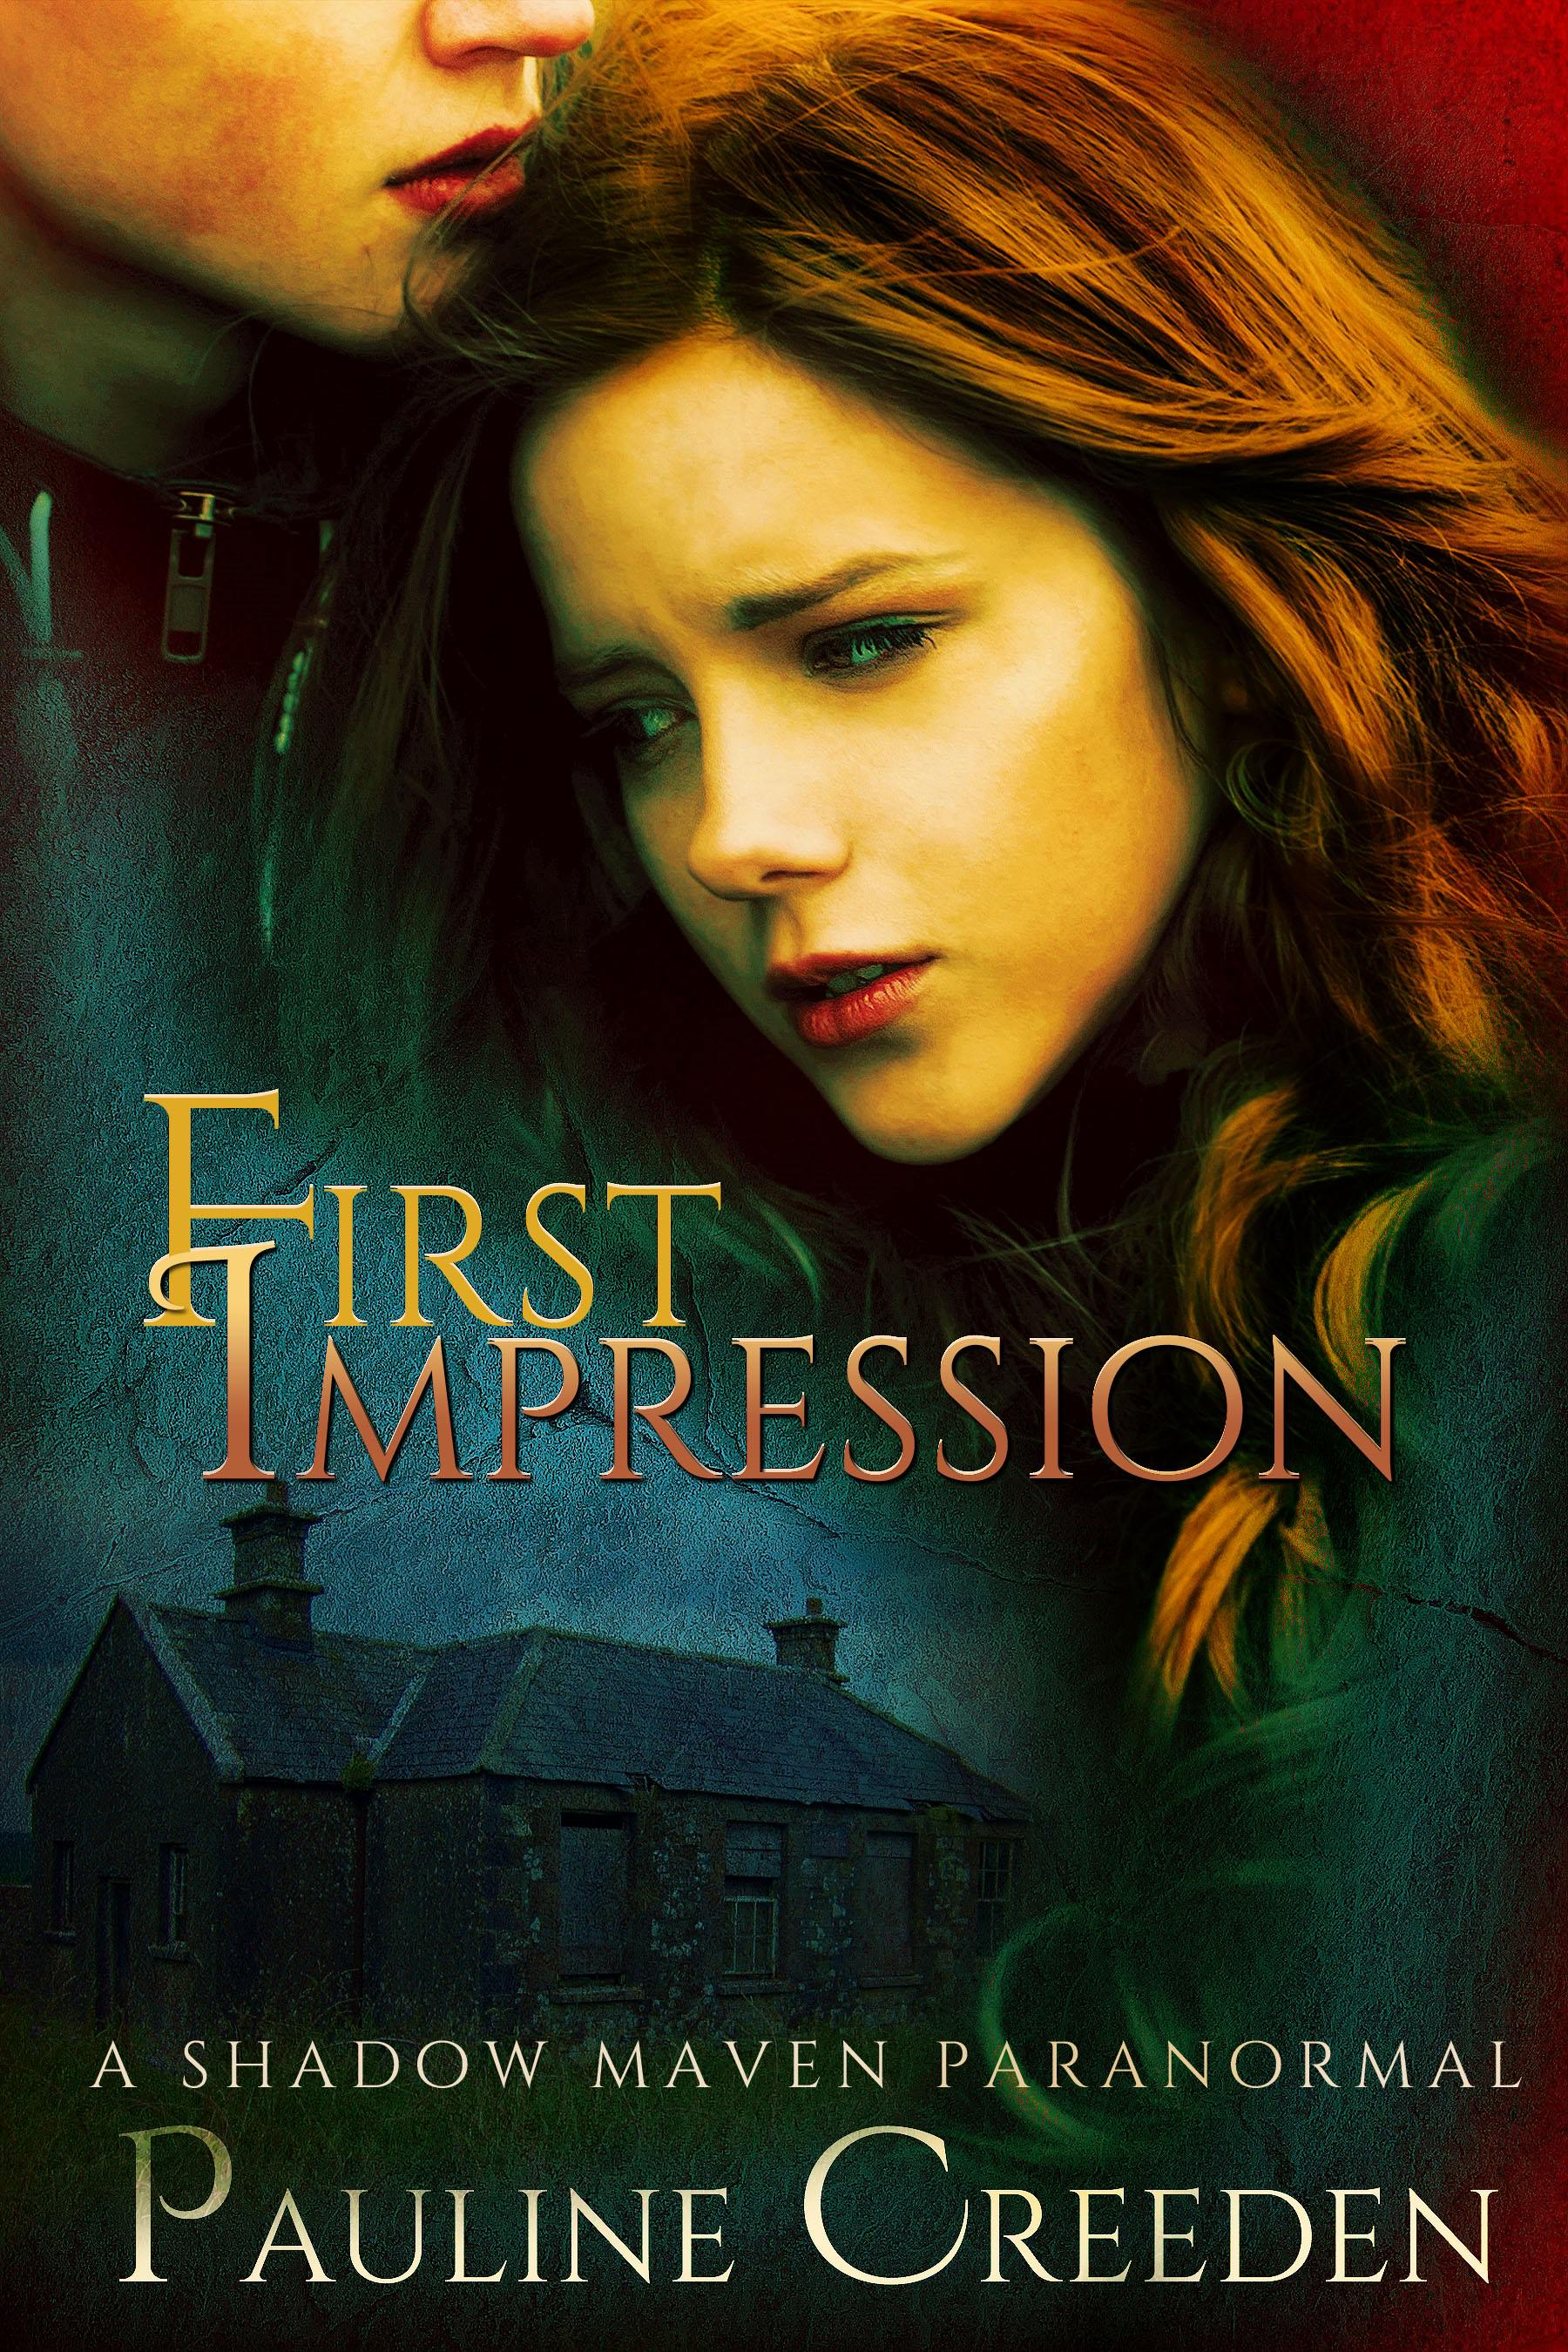 First Impression by Pauline Creeden